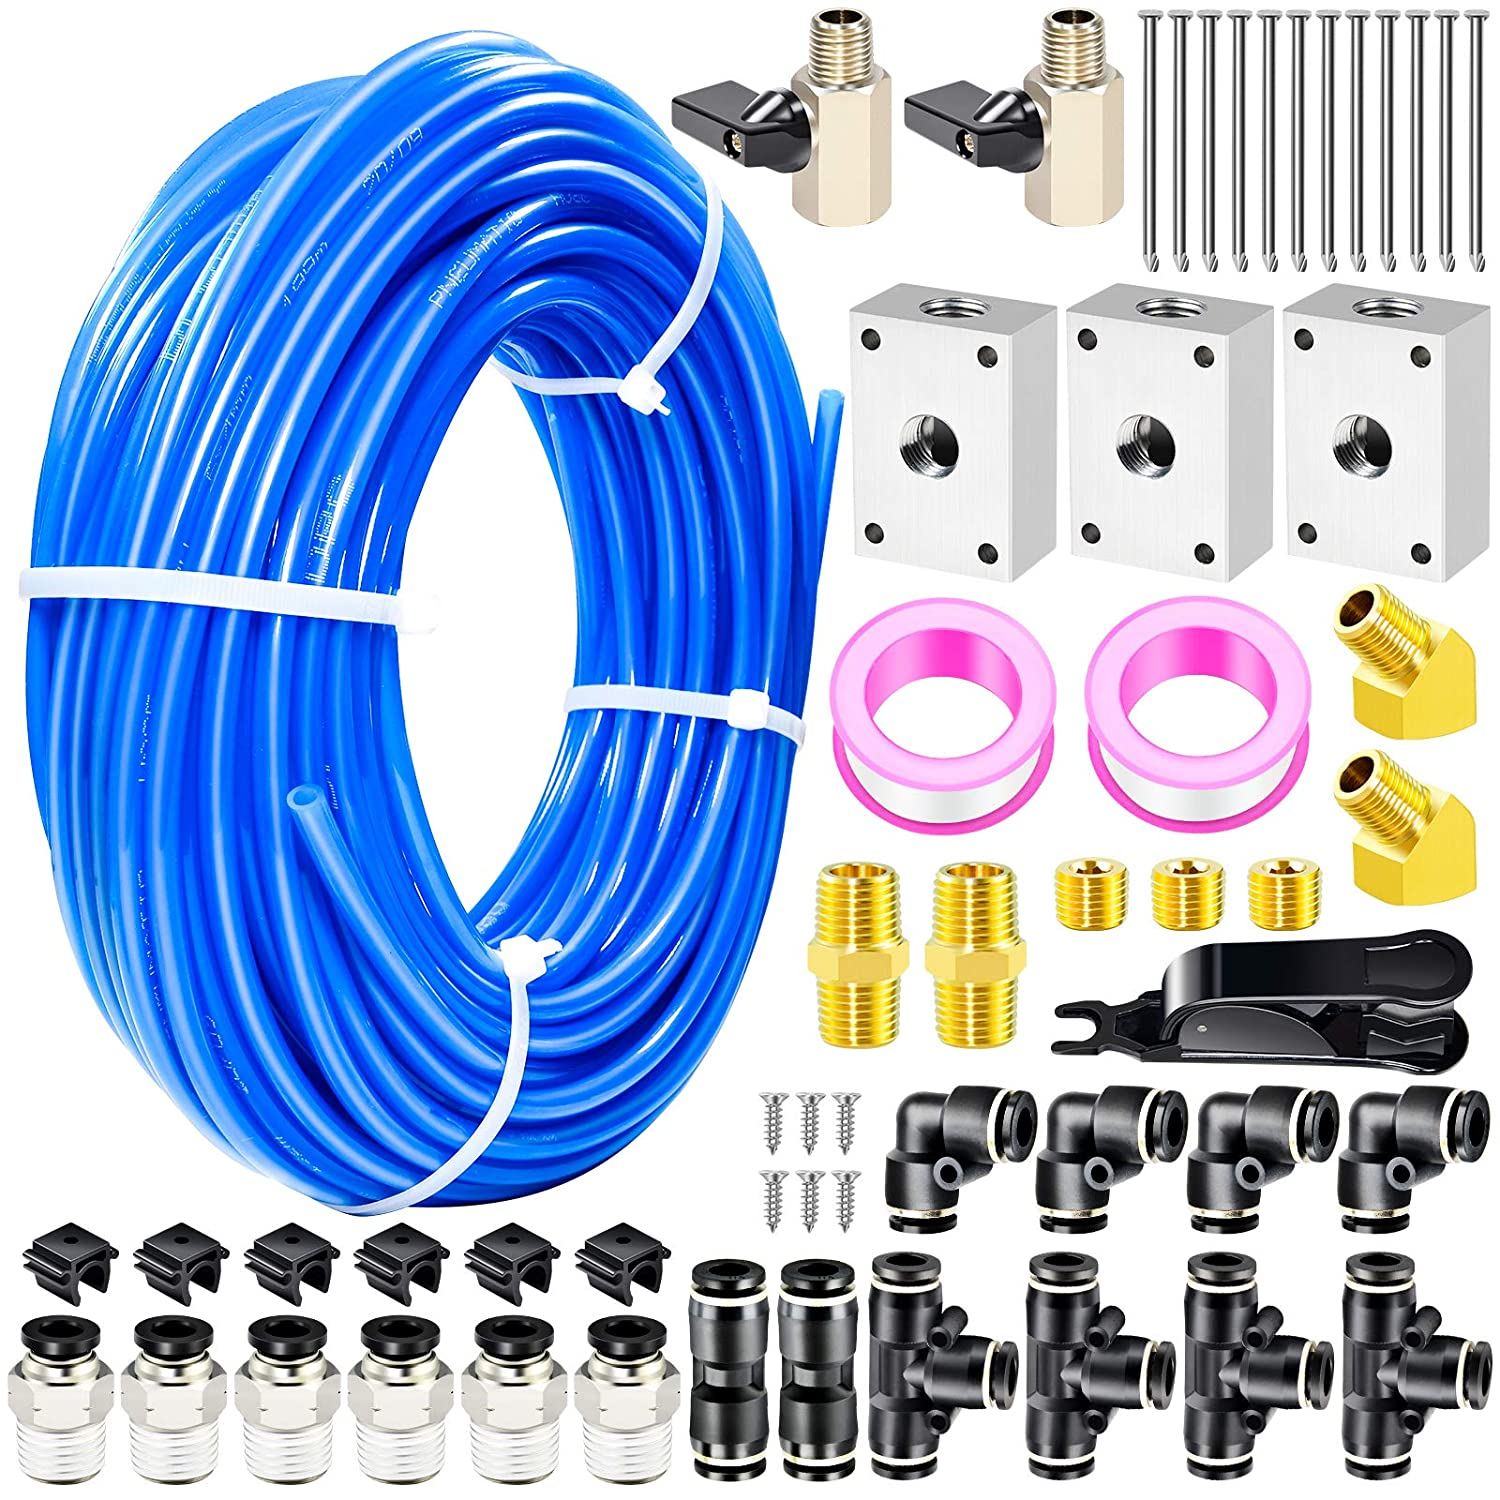 TAILONZ PNEUMATIC Blue 1 2 Inch Challenge the lowest price of Japan ☆ od PU Meter Air Fort Worth Mall Tubing 100ft 32